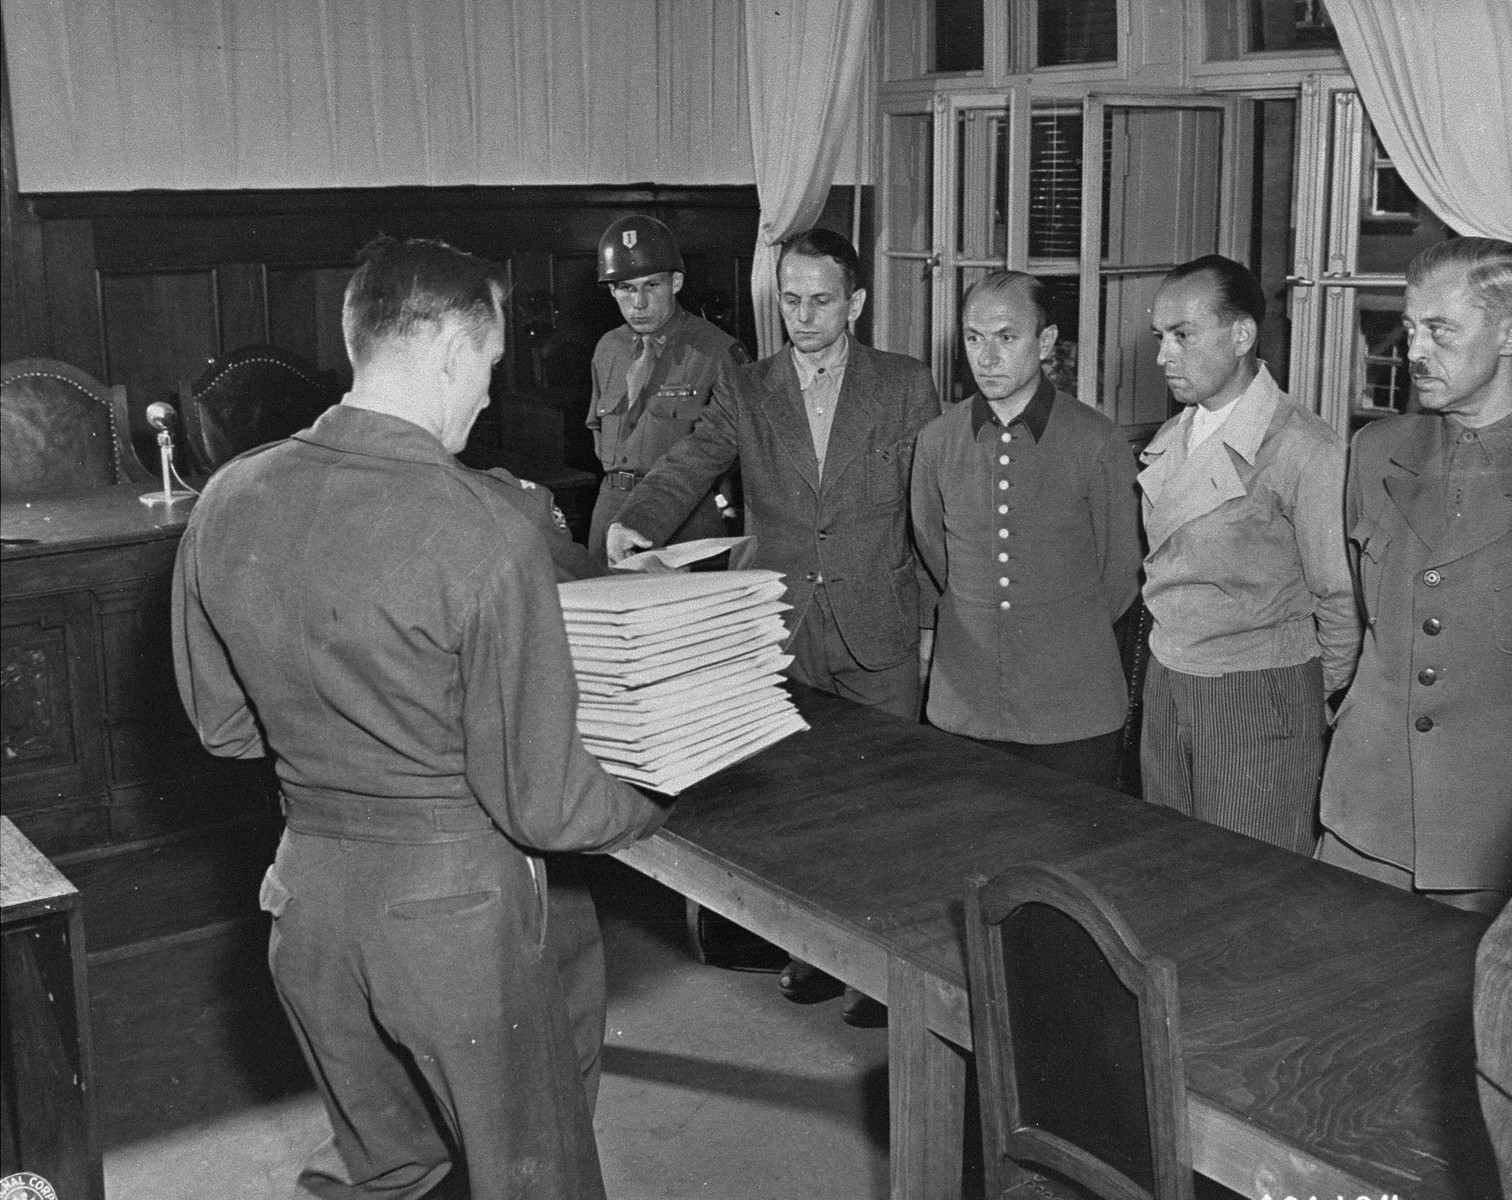 Defendant Otto Ohlendorf (left) receives his indictment from Col. C.W. Mays, Marshal of the Military Tribunal, before the Einsatzgruppen Trial.  The other defendants (left to right) are, Heinz Jost, Erich Naumann, and Erwin Schulz.